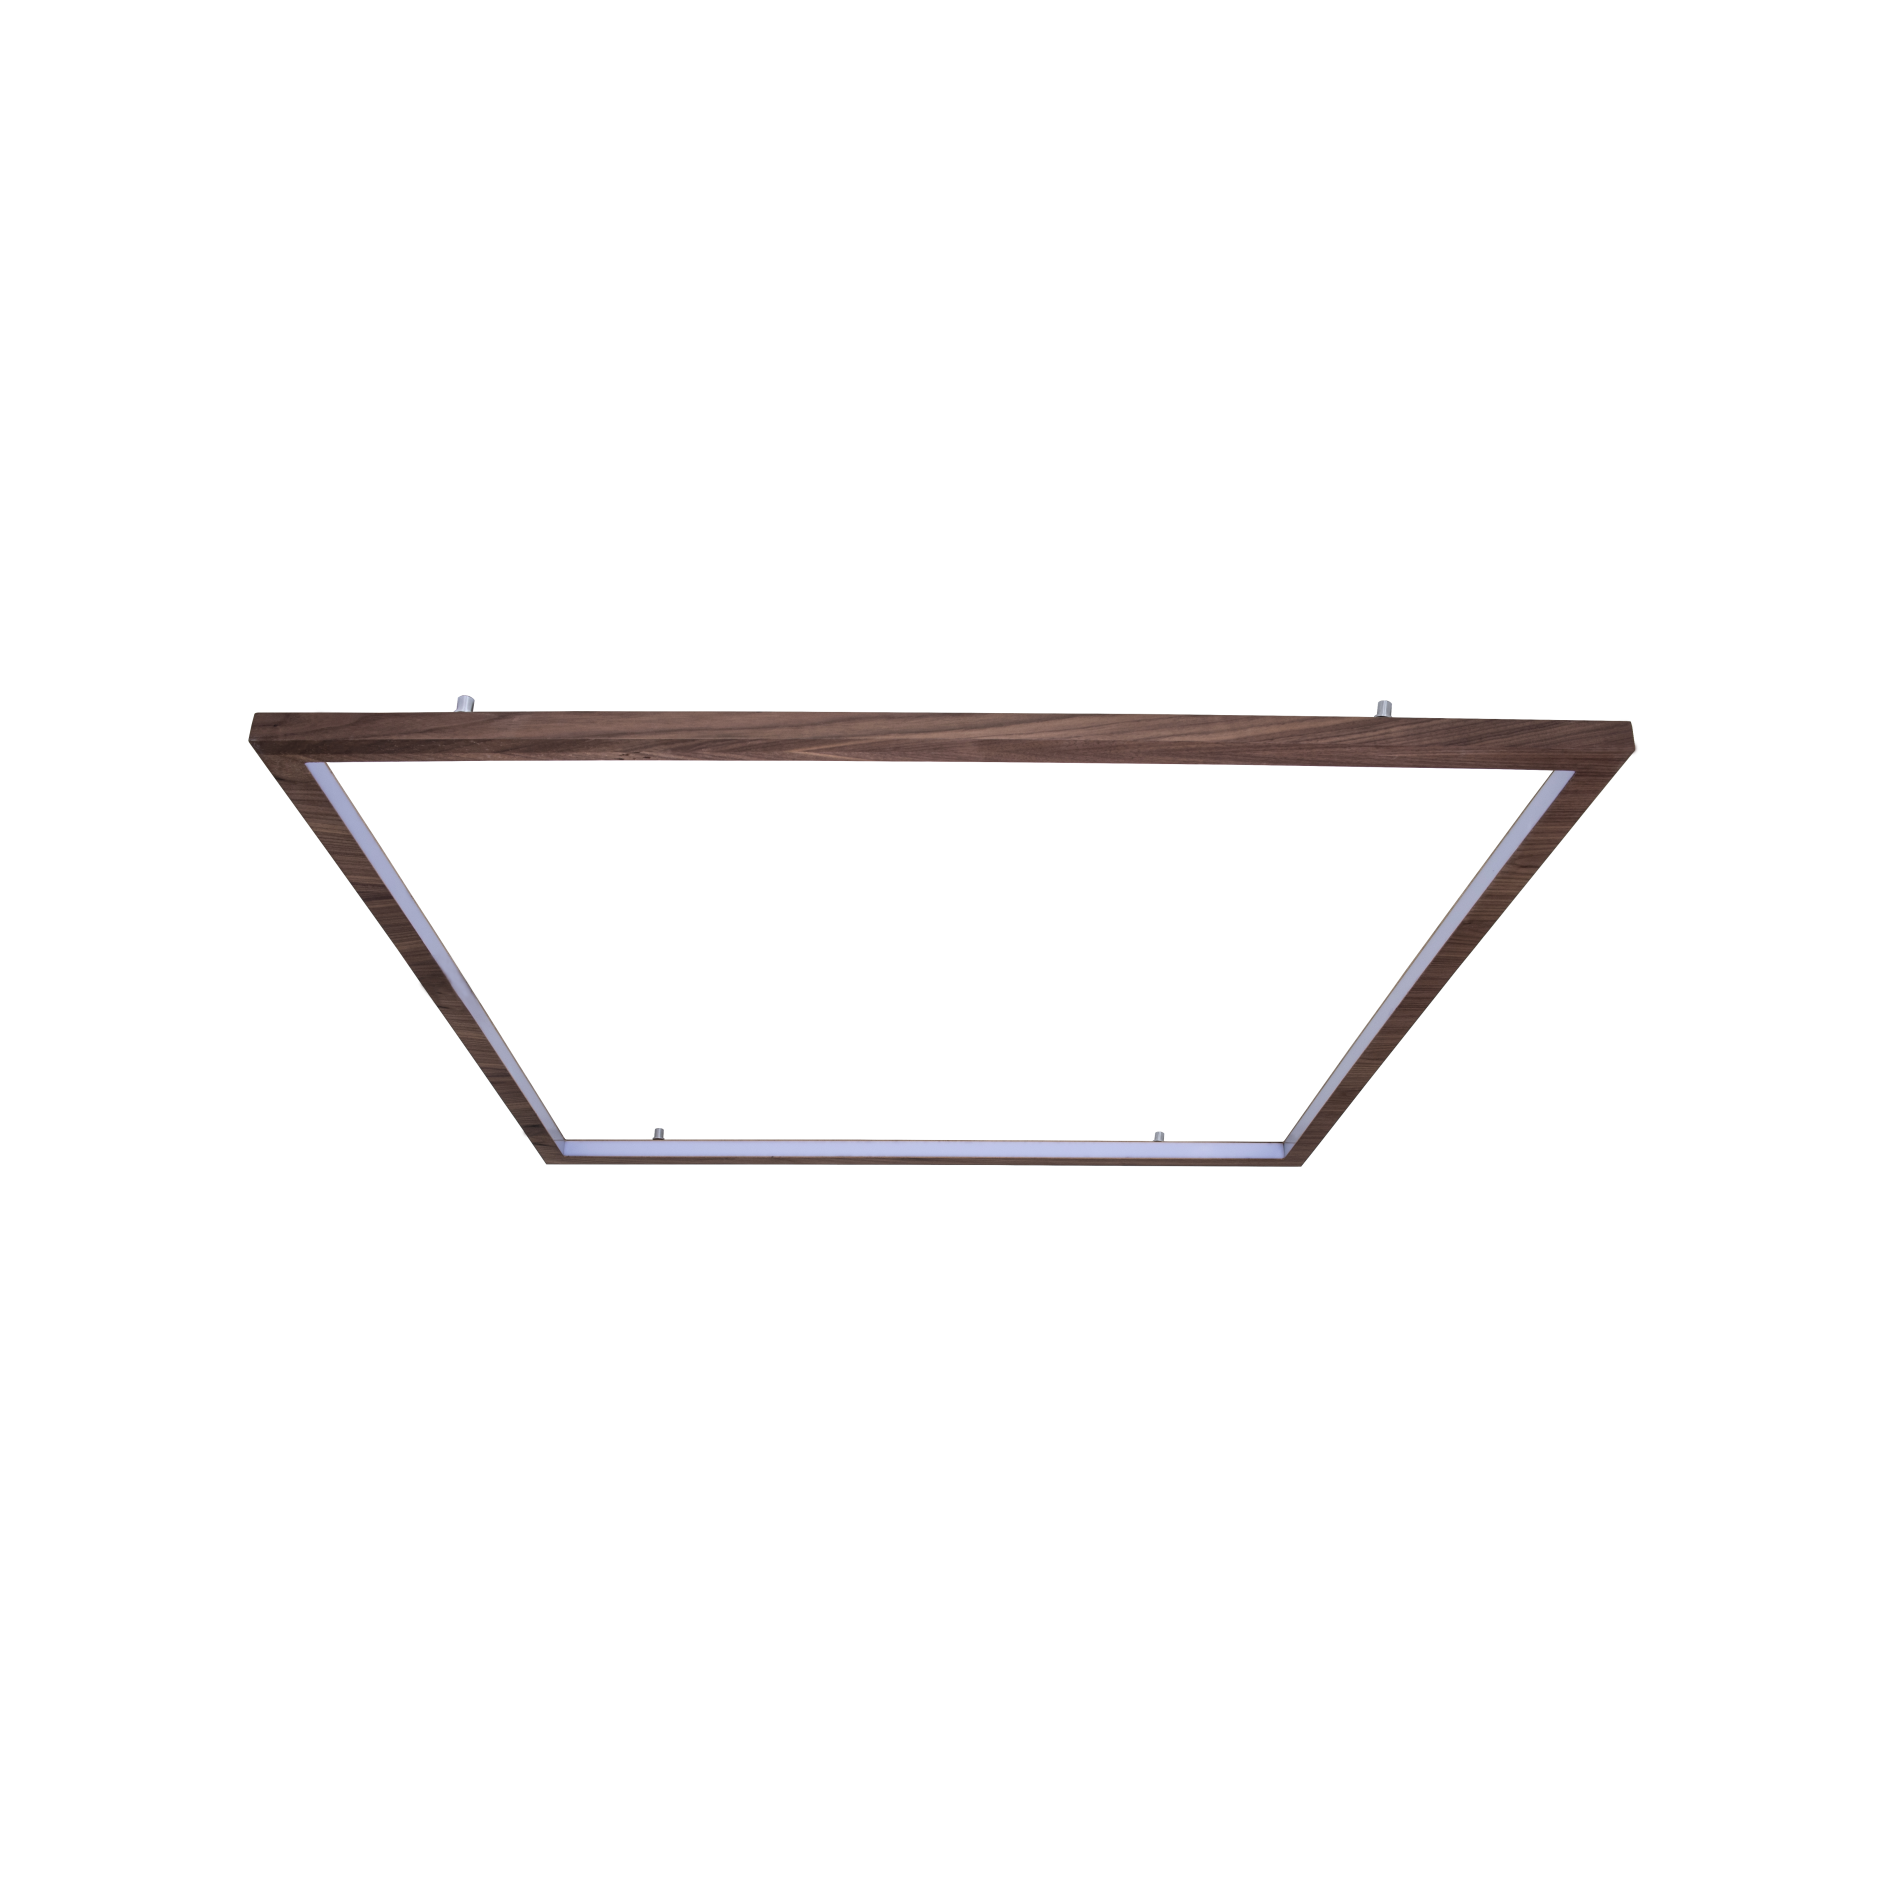 Ceiling Lamp Accord Frame 5071 - Frame Line Accord Lighting